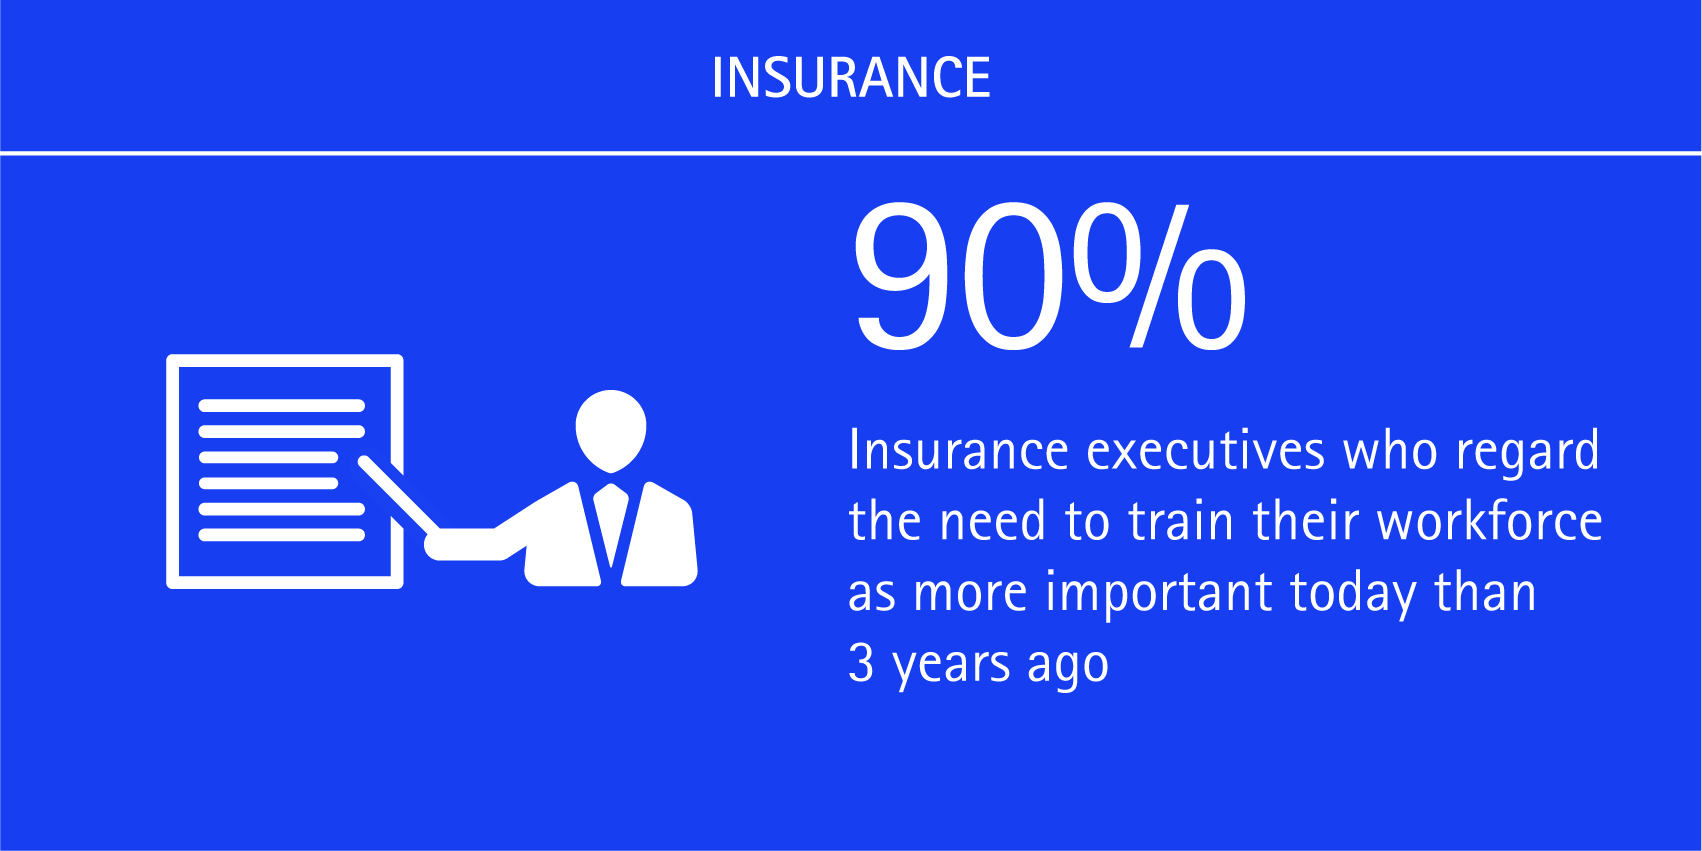 90% of insurance executives regard the need to train their workforce as more important today than 3 years ago